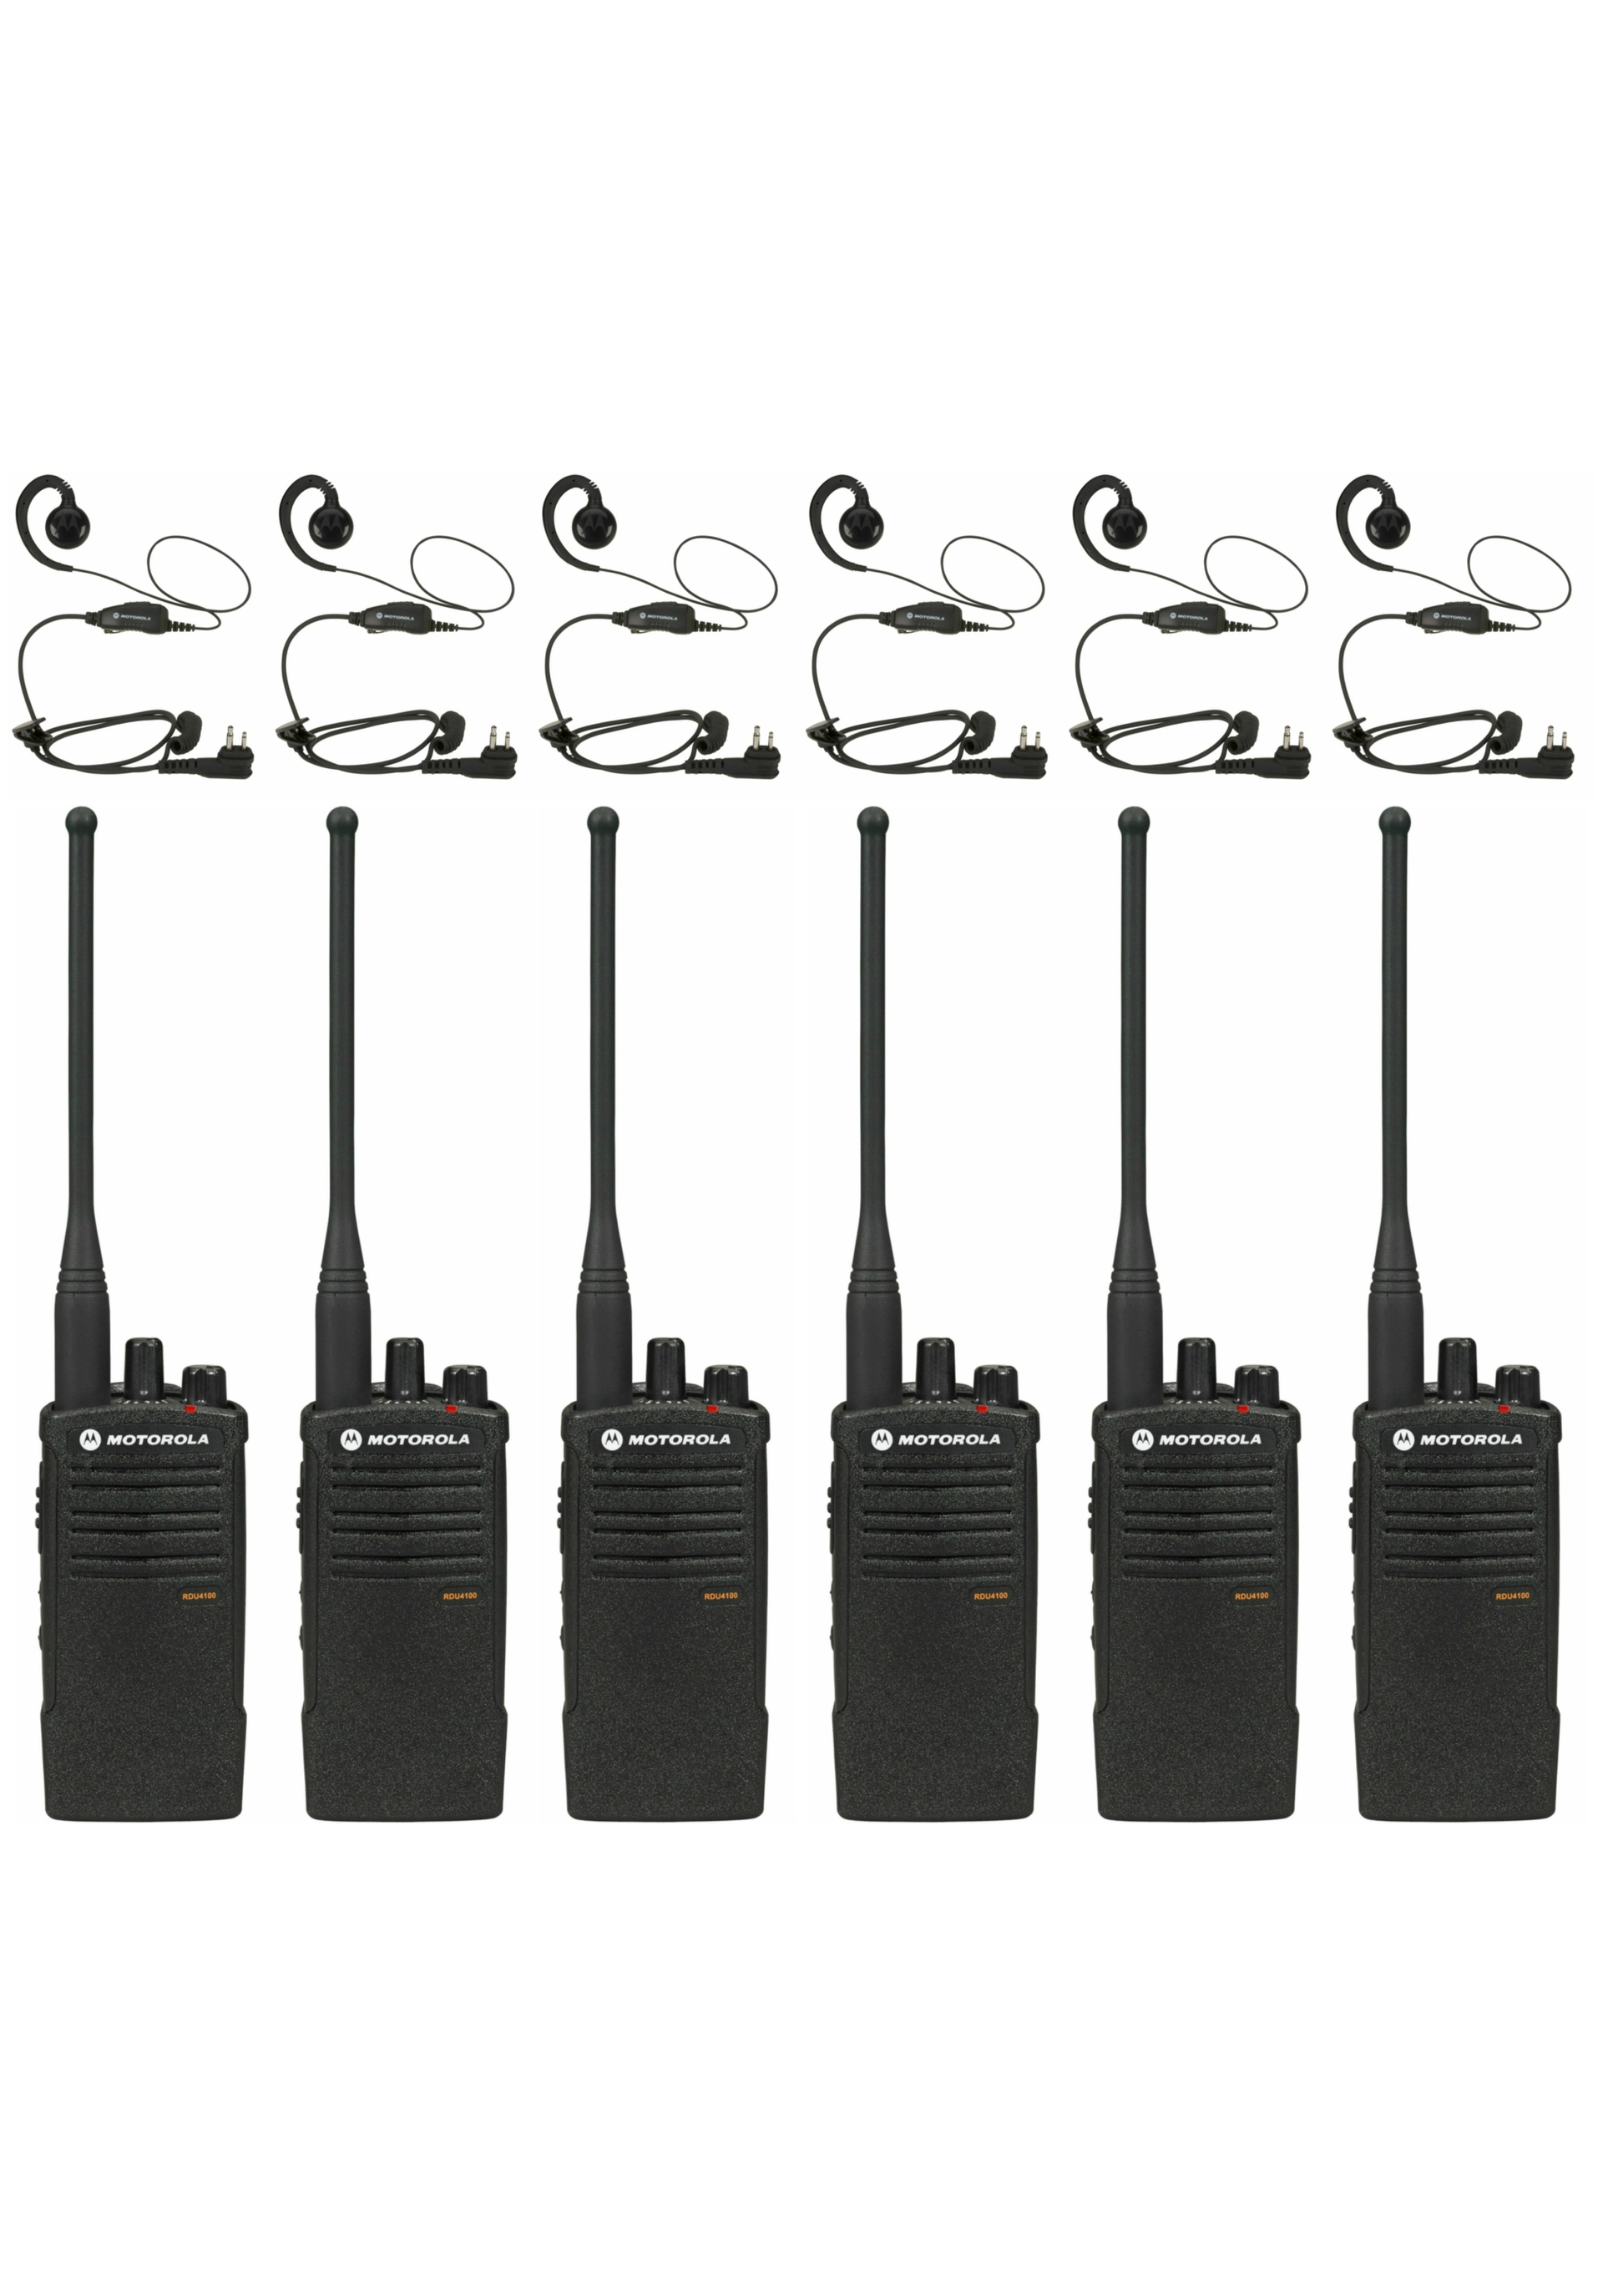 6 Motorola Rdu Uhf Two Way Radios With Hkln